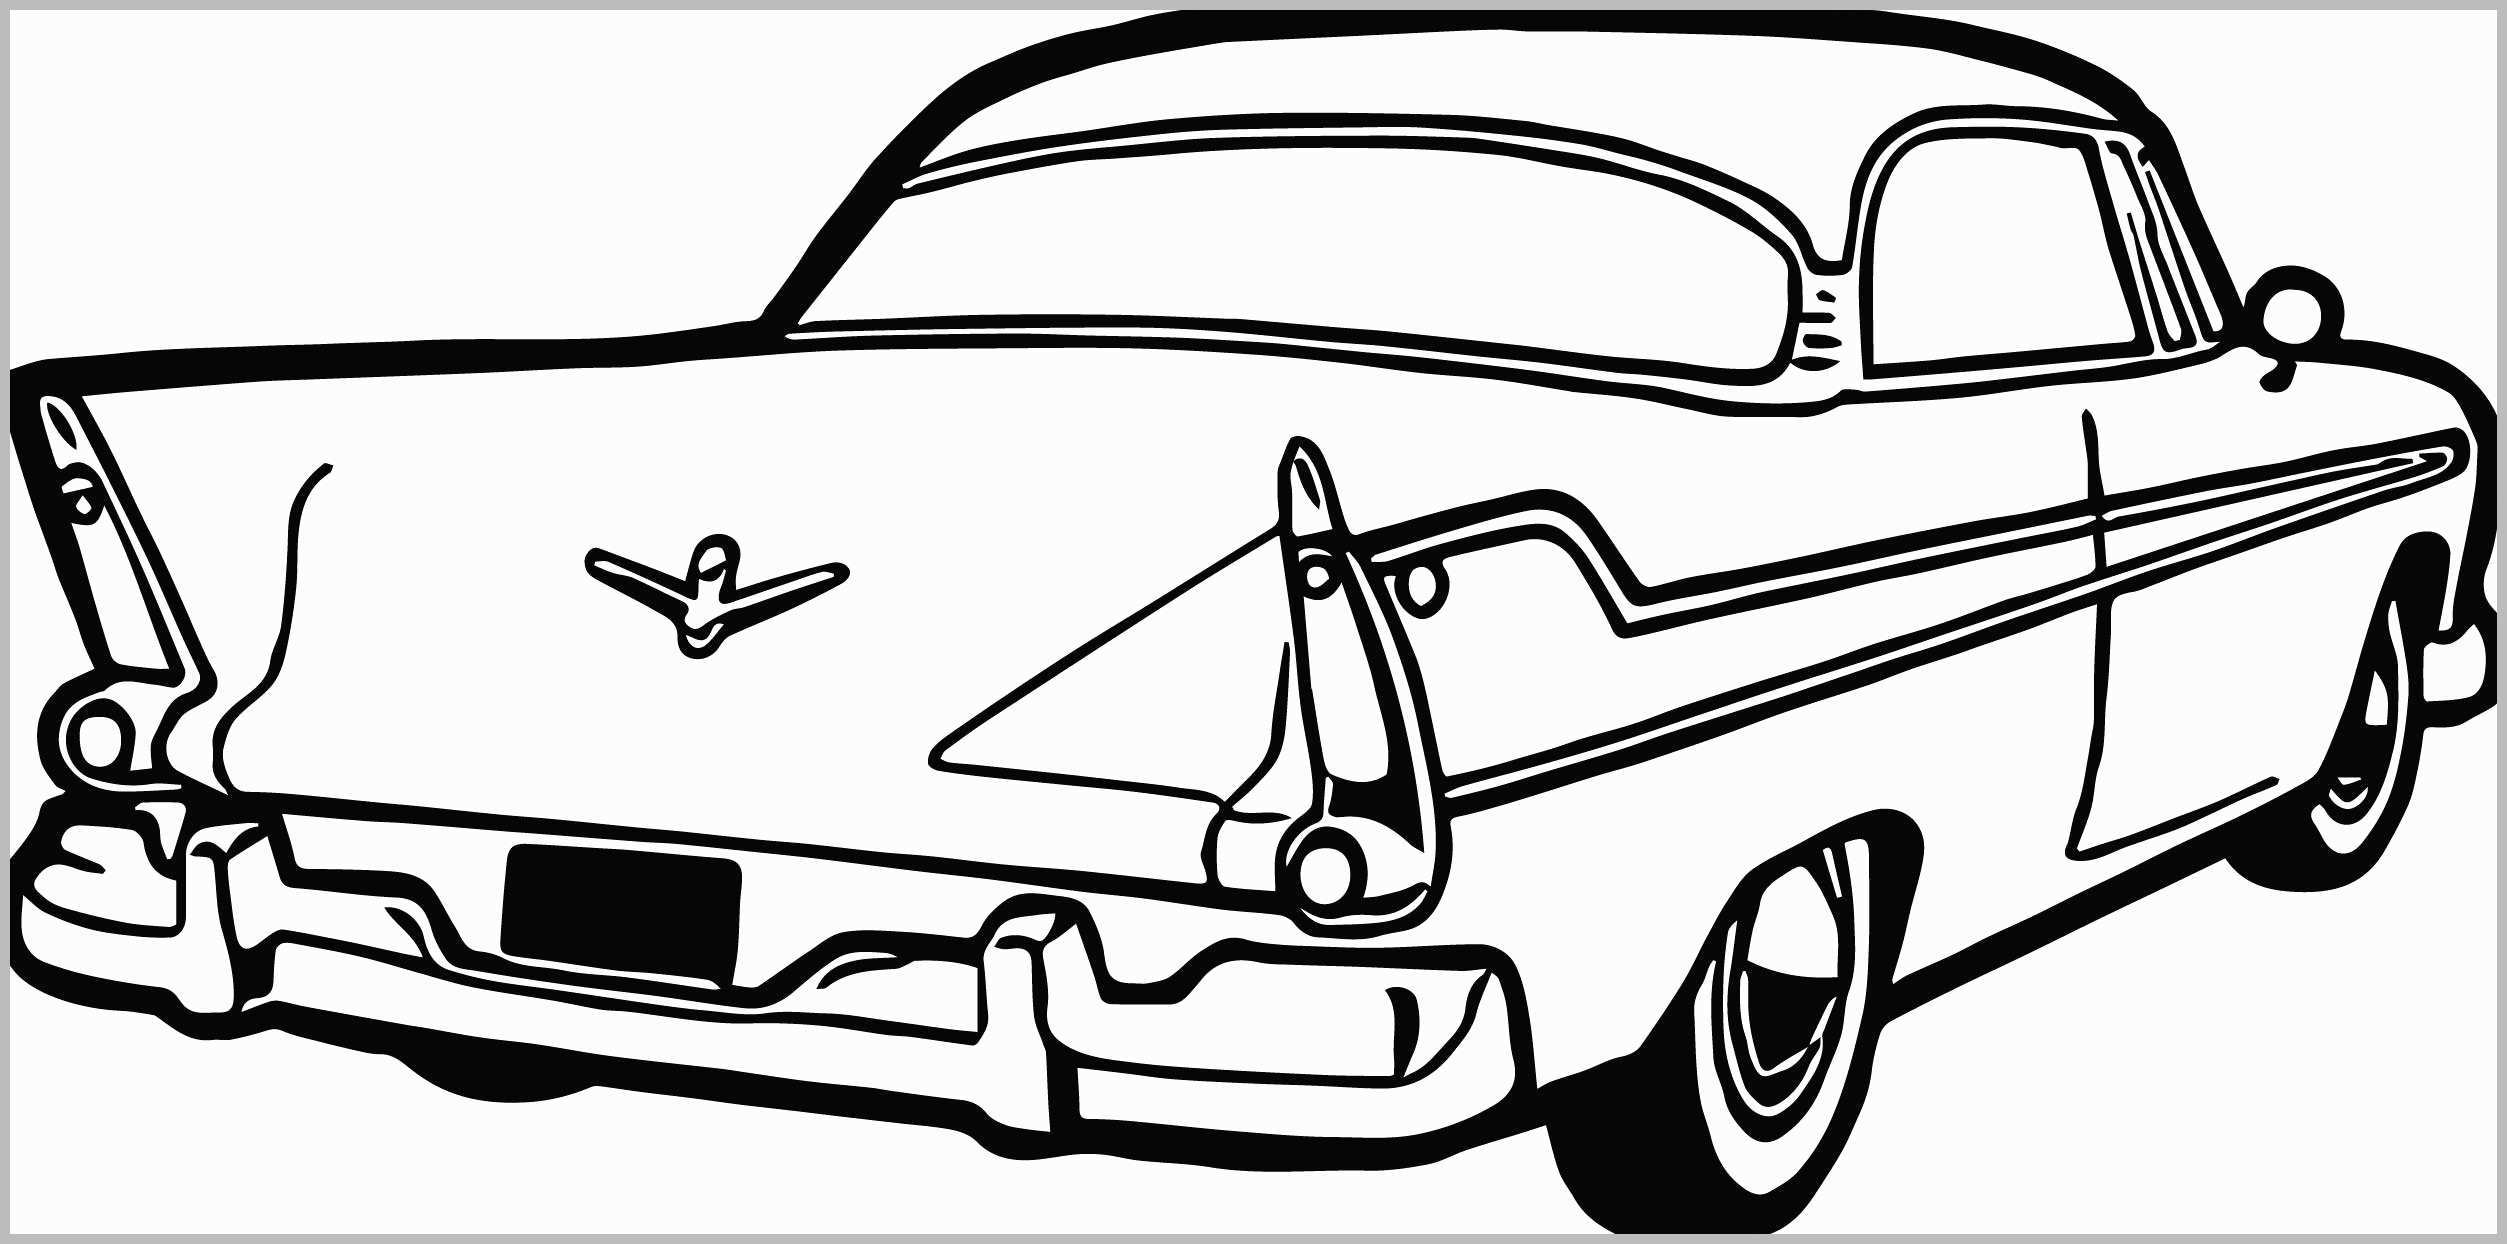 Police Car Coloring Pages Police Car Coloring Sheets Pages Games ...   1244x2507